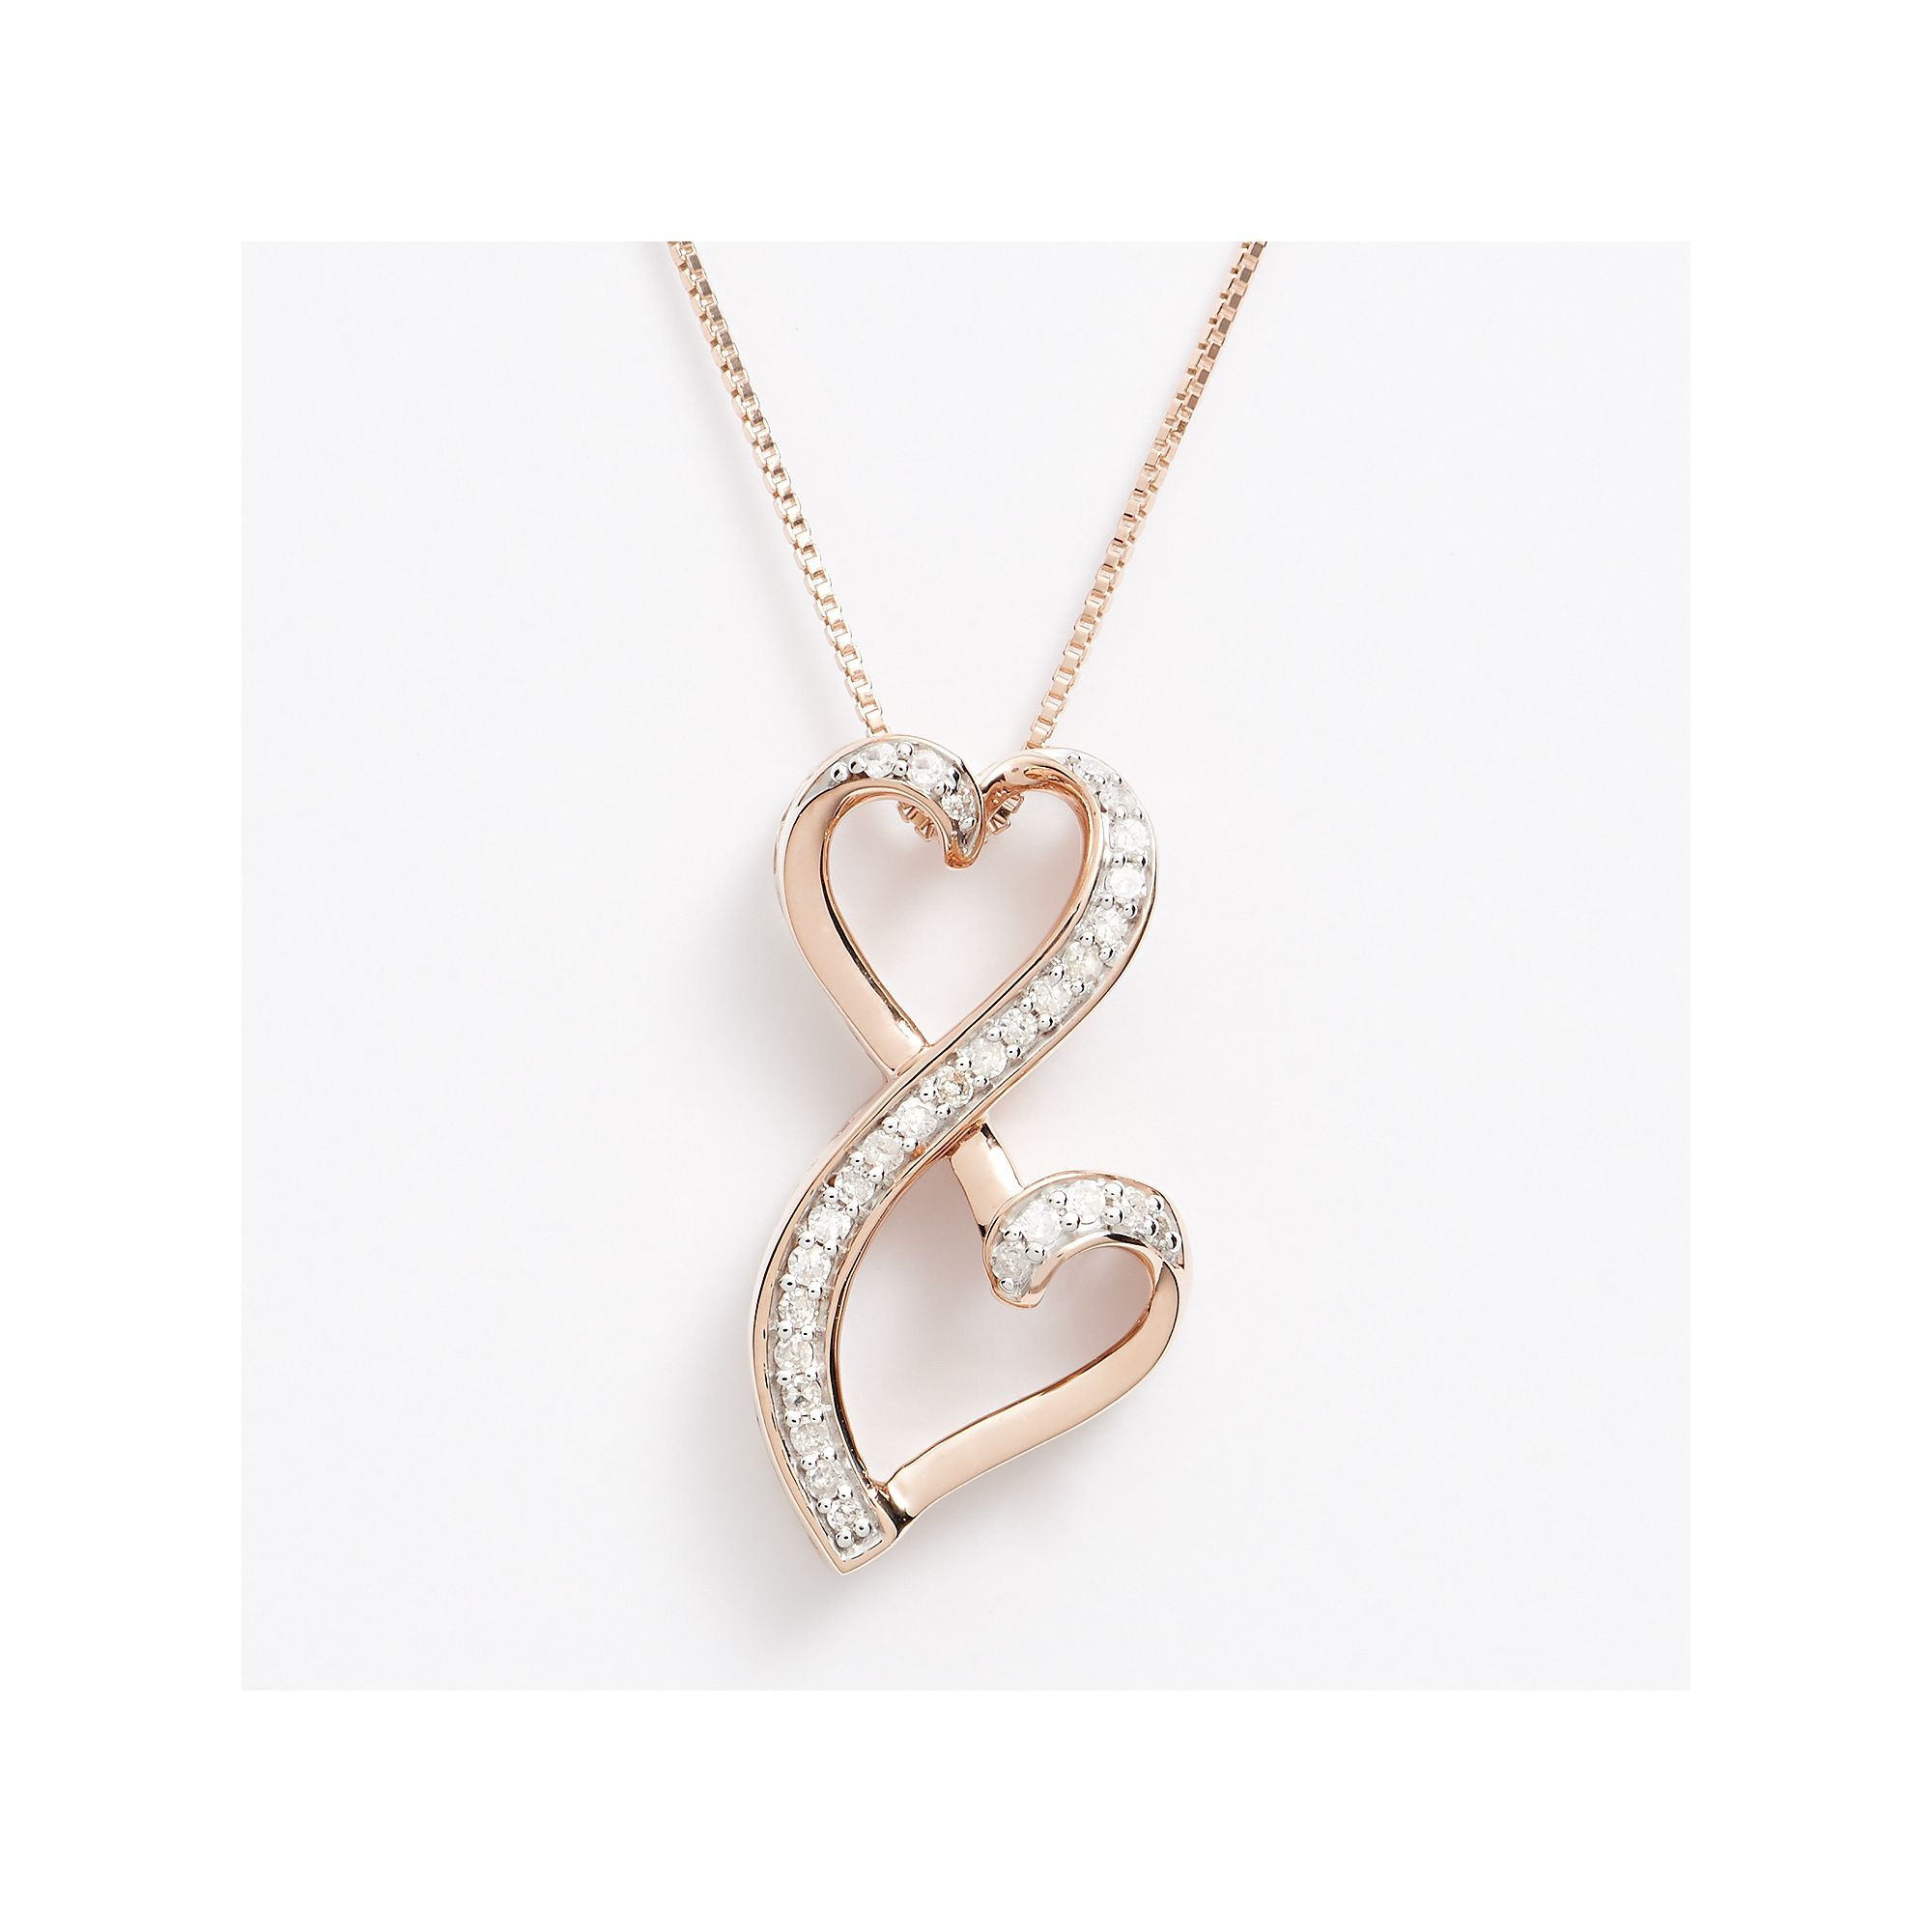 Valentine/'s Day Love Gift Heart Necklace Black and White Diamonds 14K Gold Plated